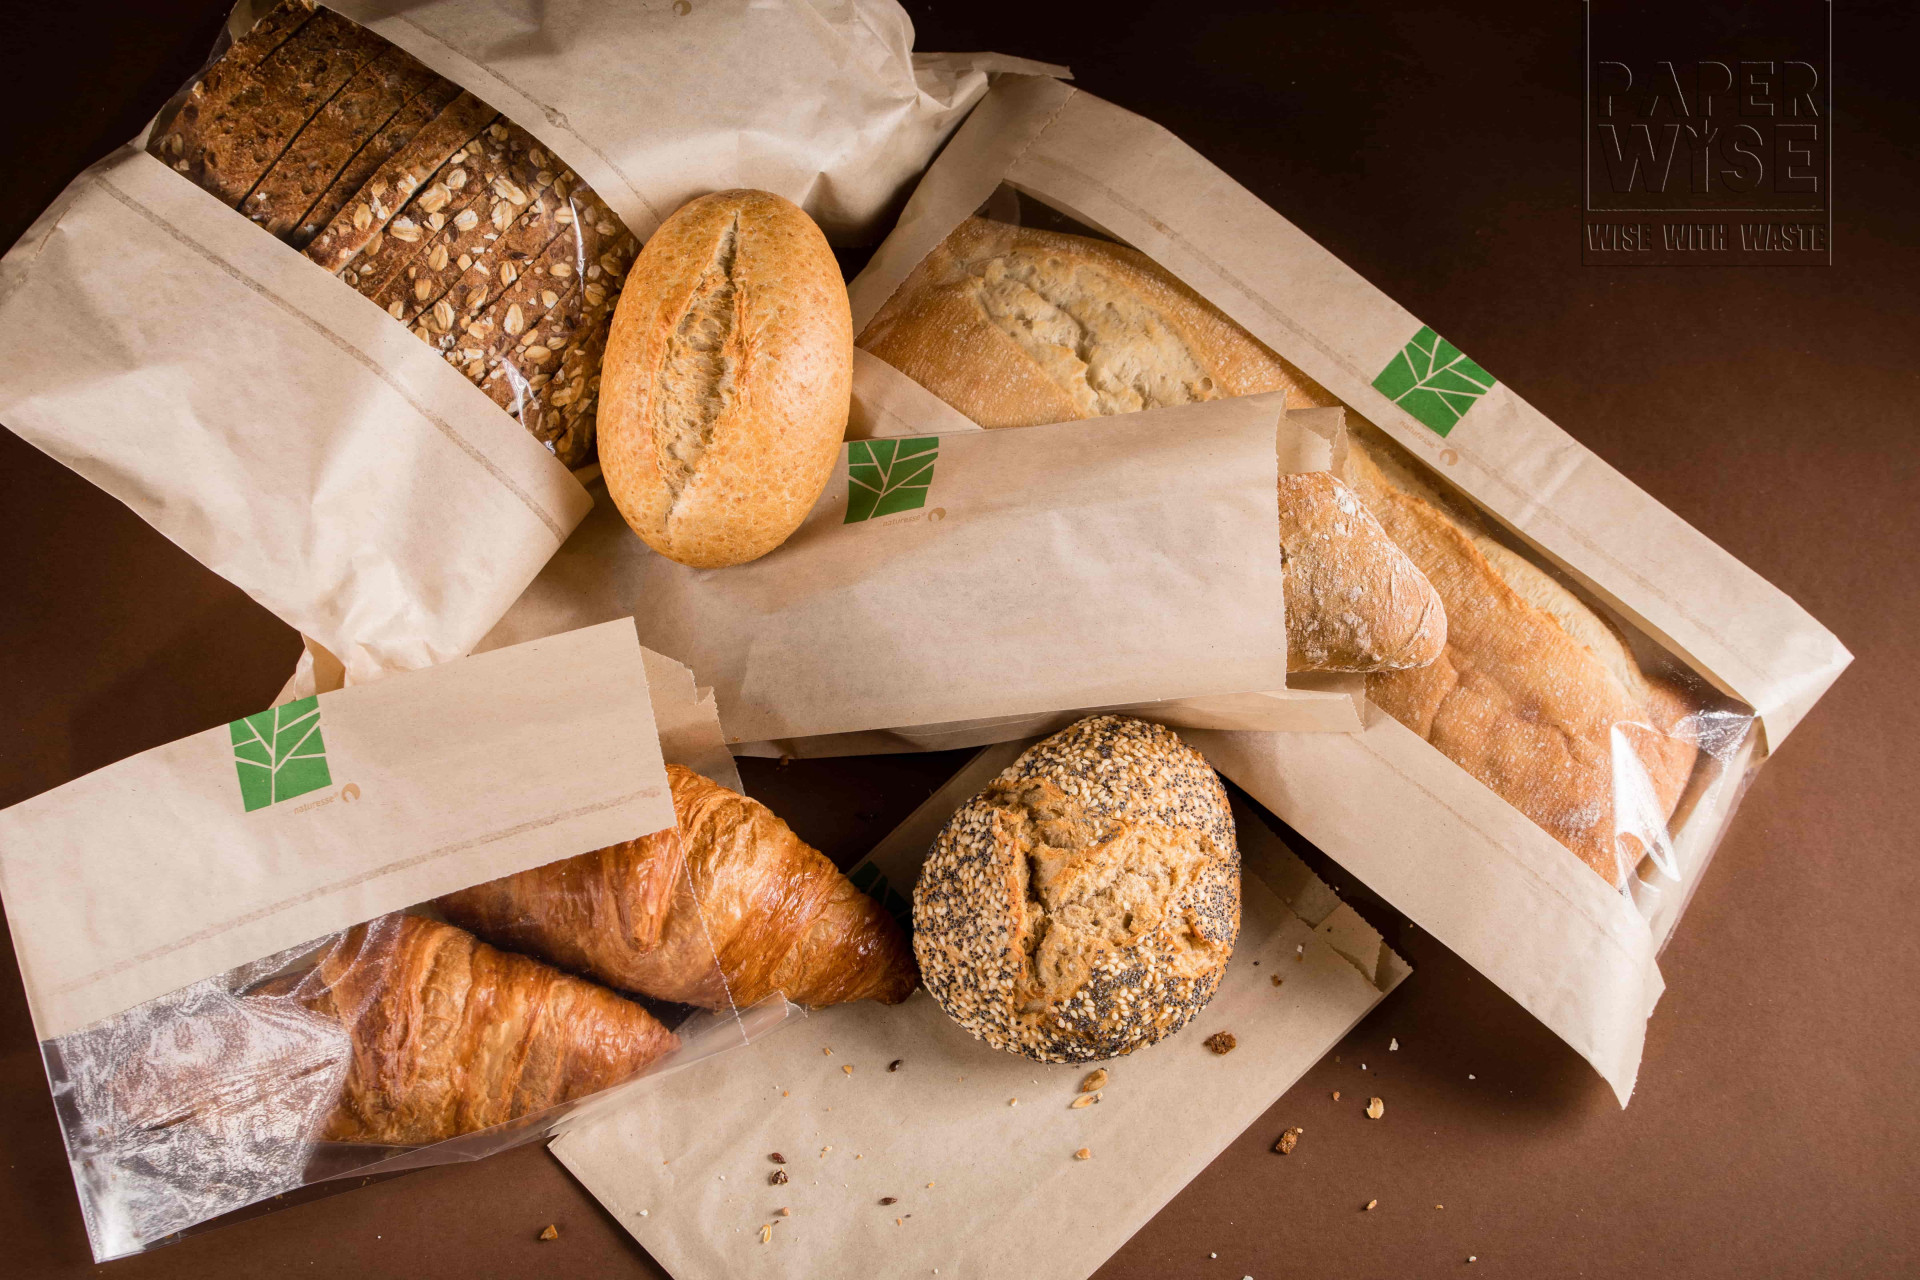 environmentally-friendly packaging for bread